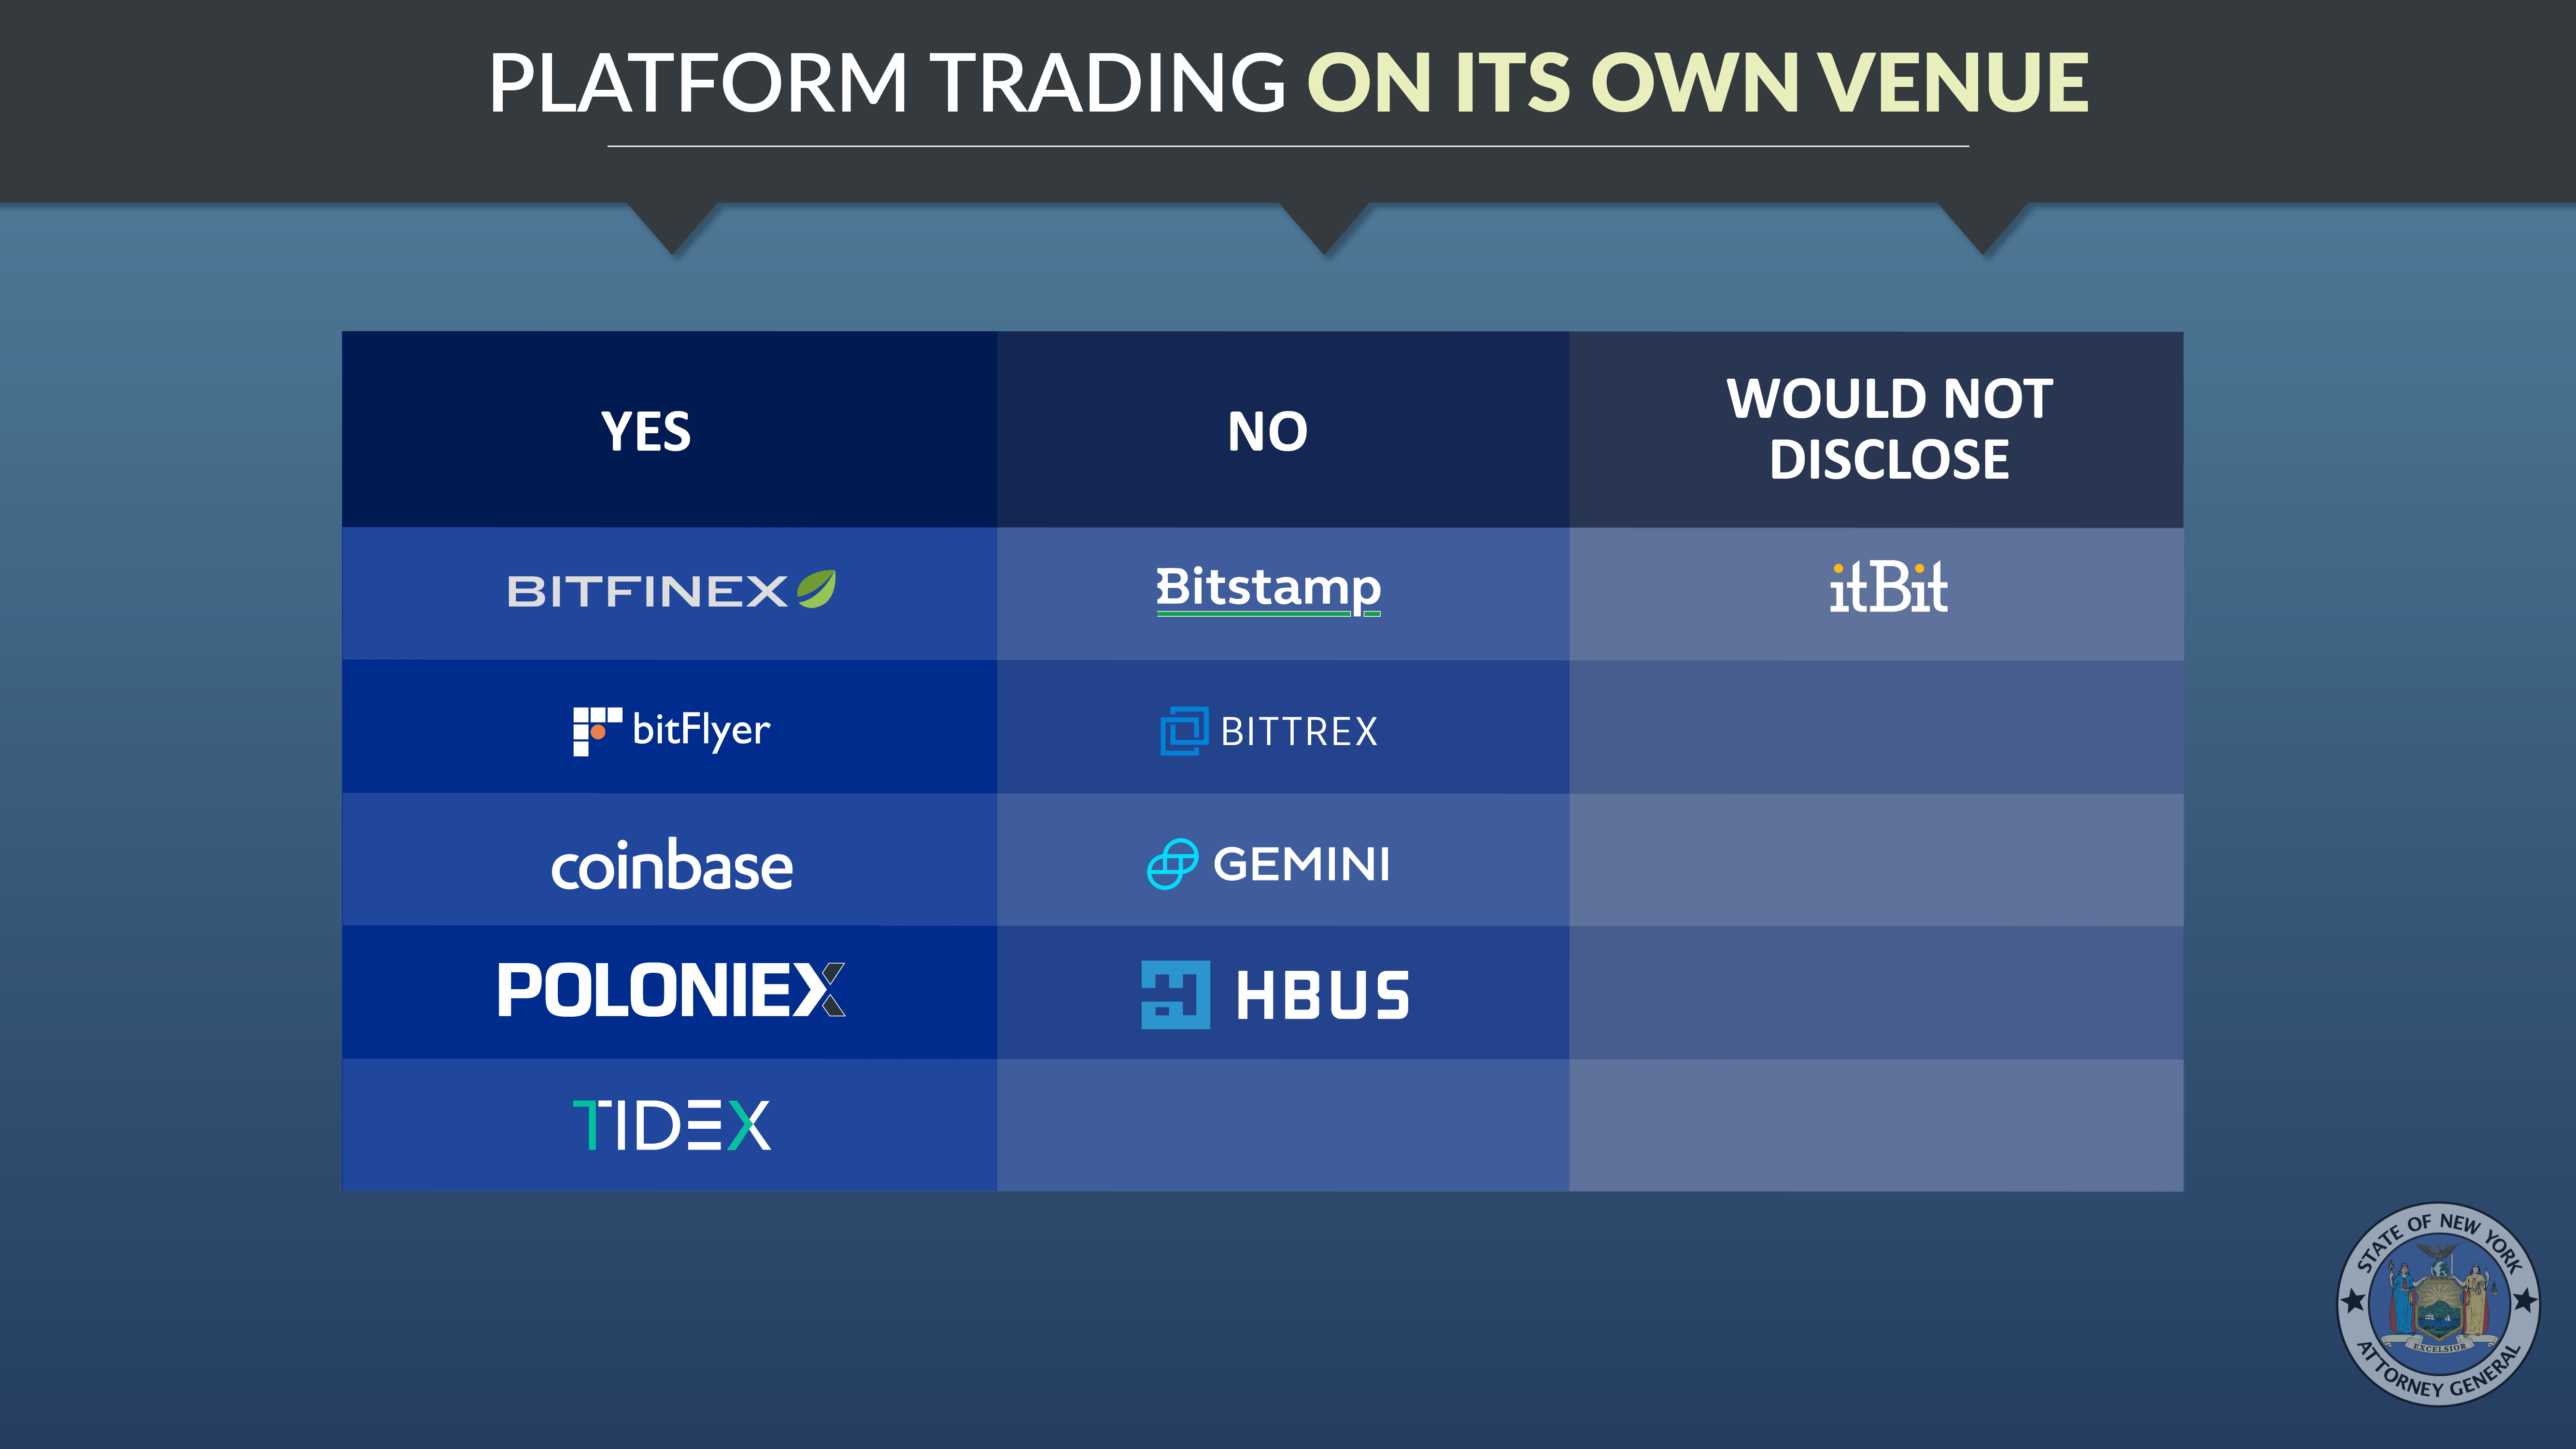 Platform Trading on its Own Venue